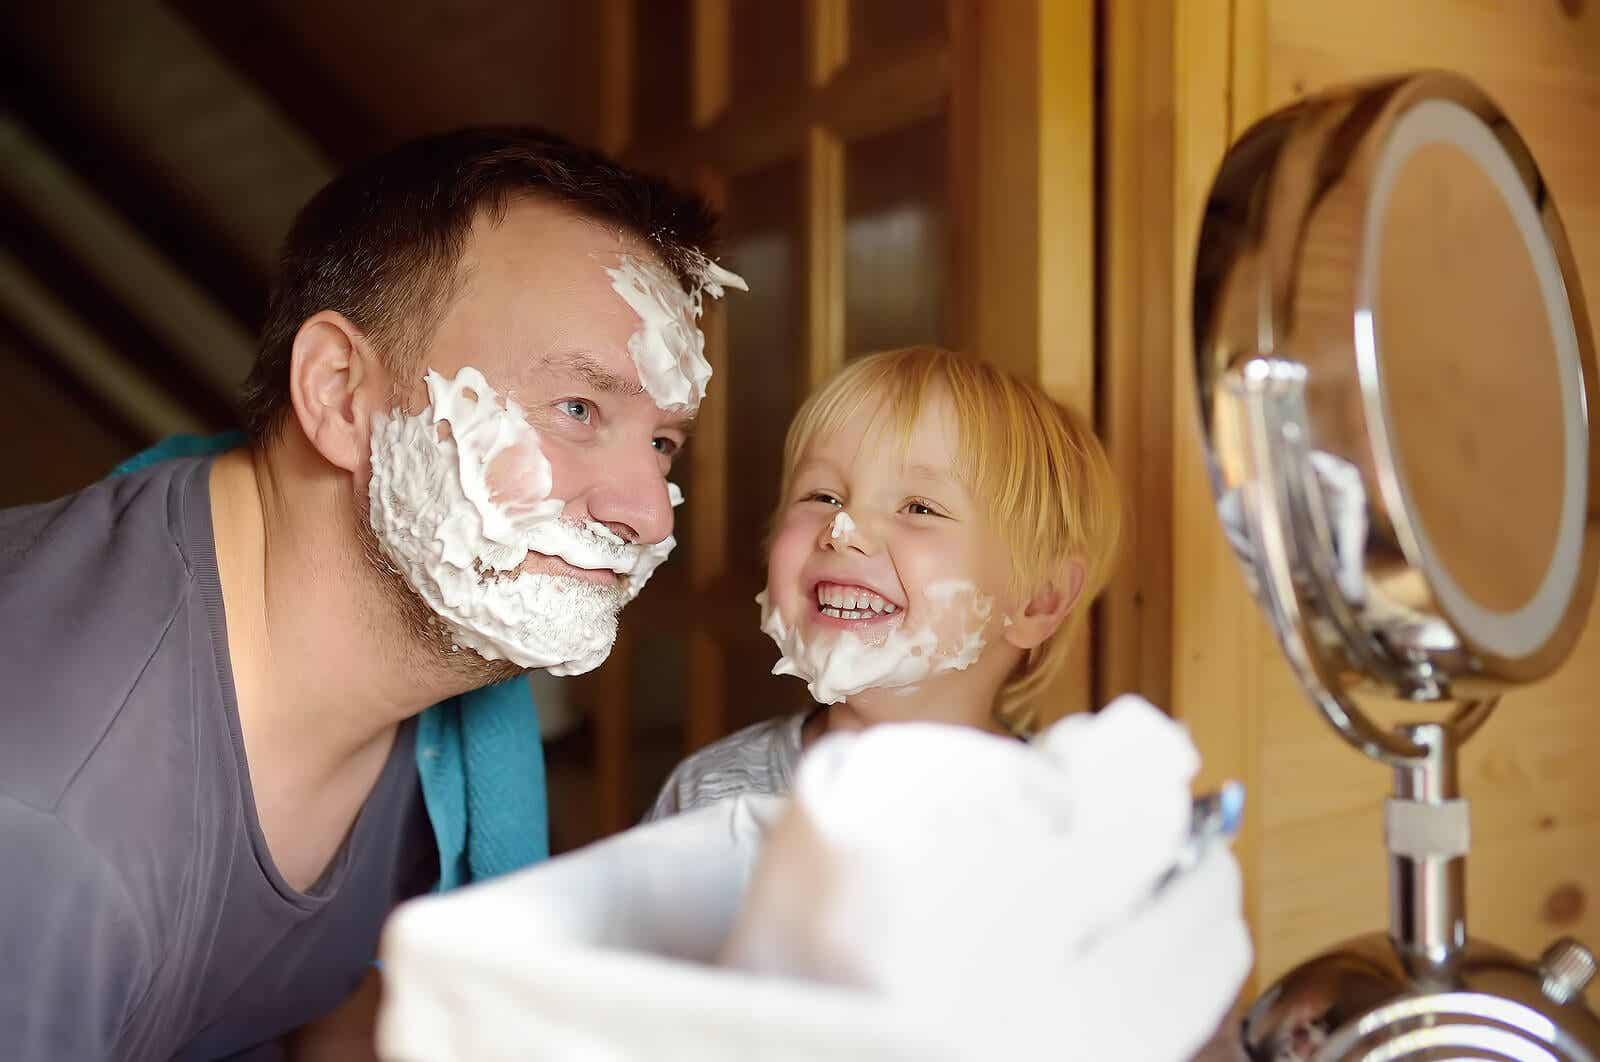 A father and son with shaving cream on their faces, smiling.